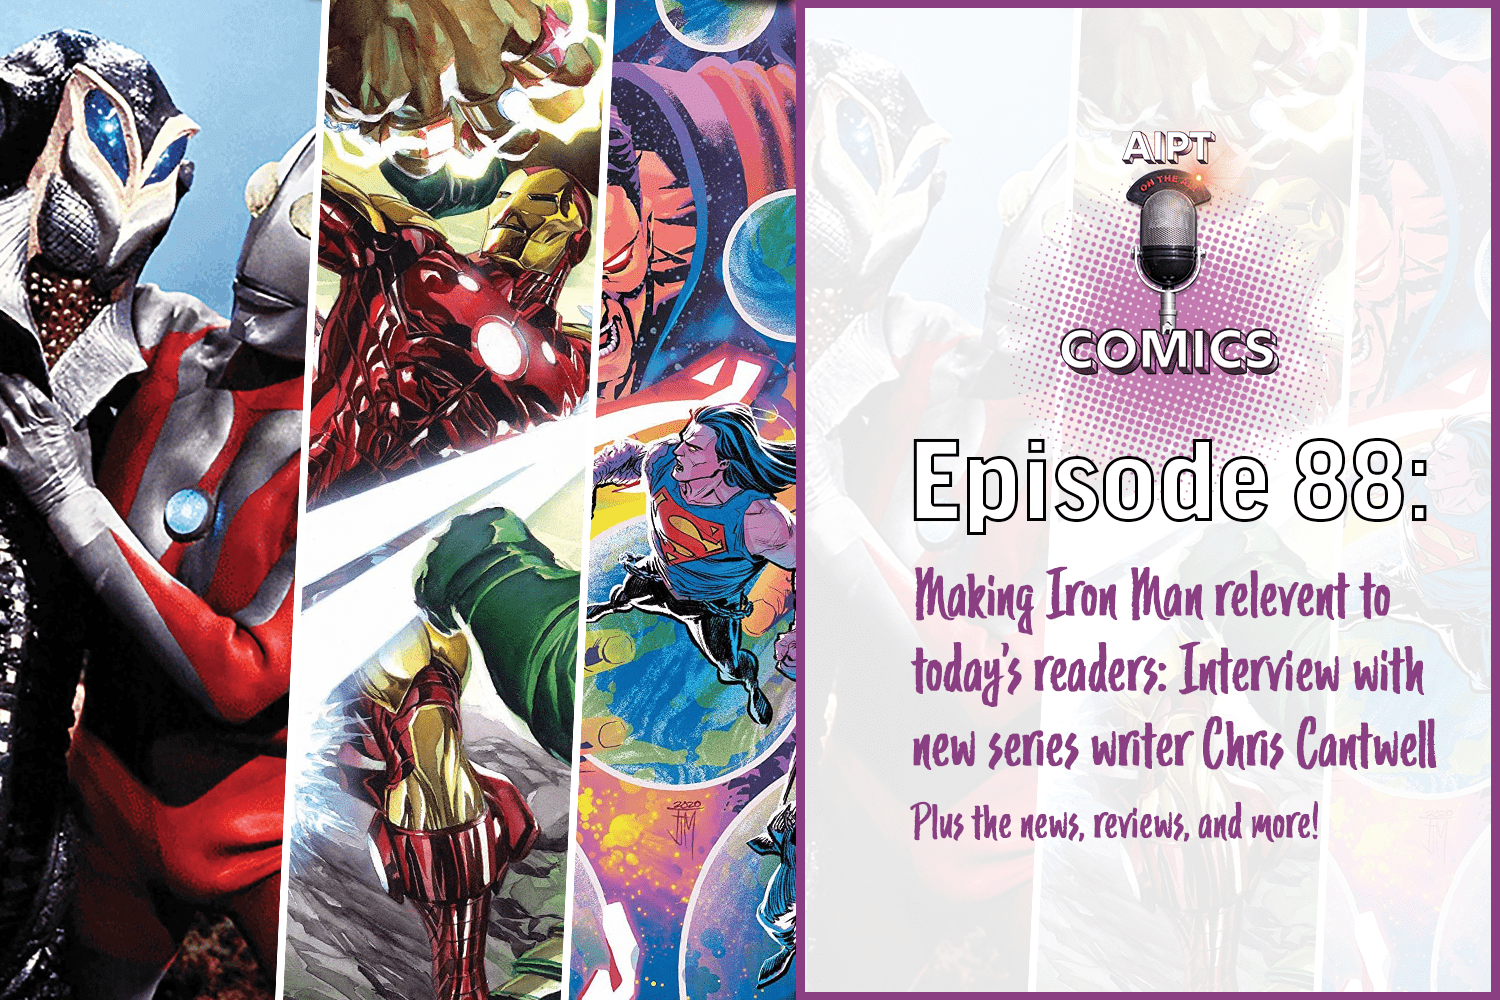 Guest Christopher Cantwell joins the show to discuss his take on the new Iron Man series, Doctor Doom, and so much more.